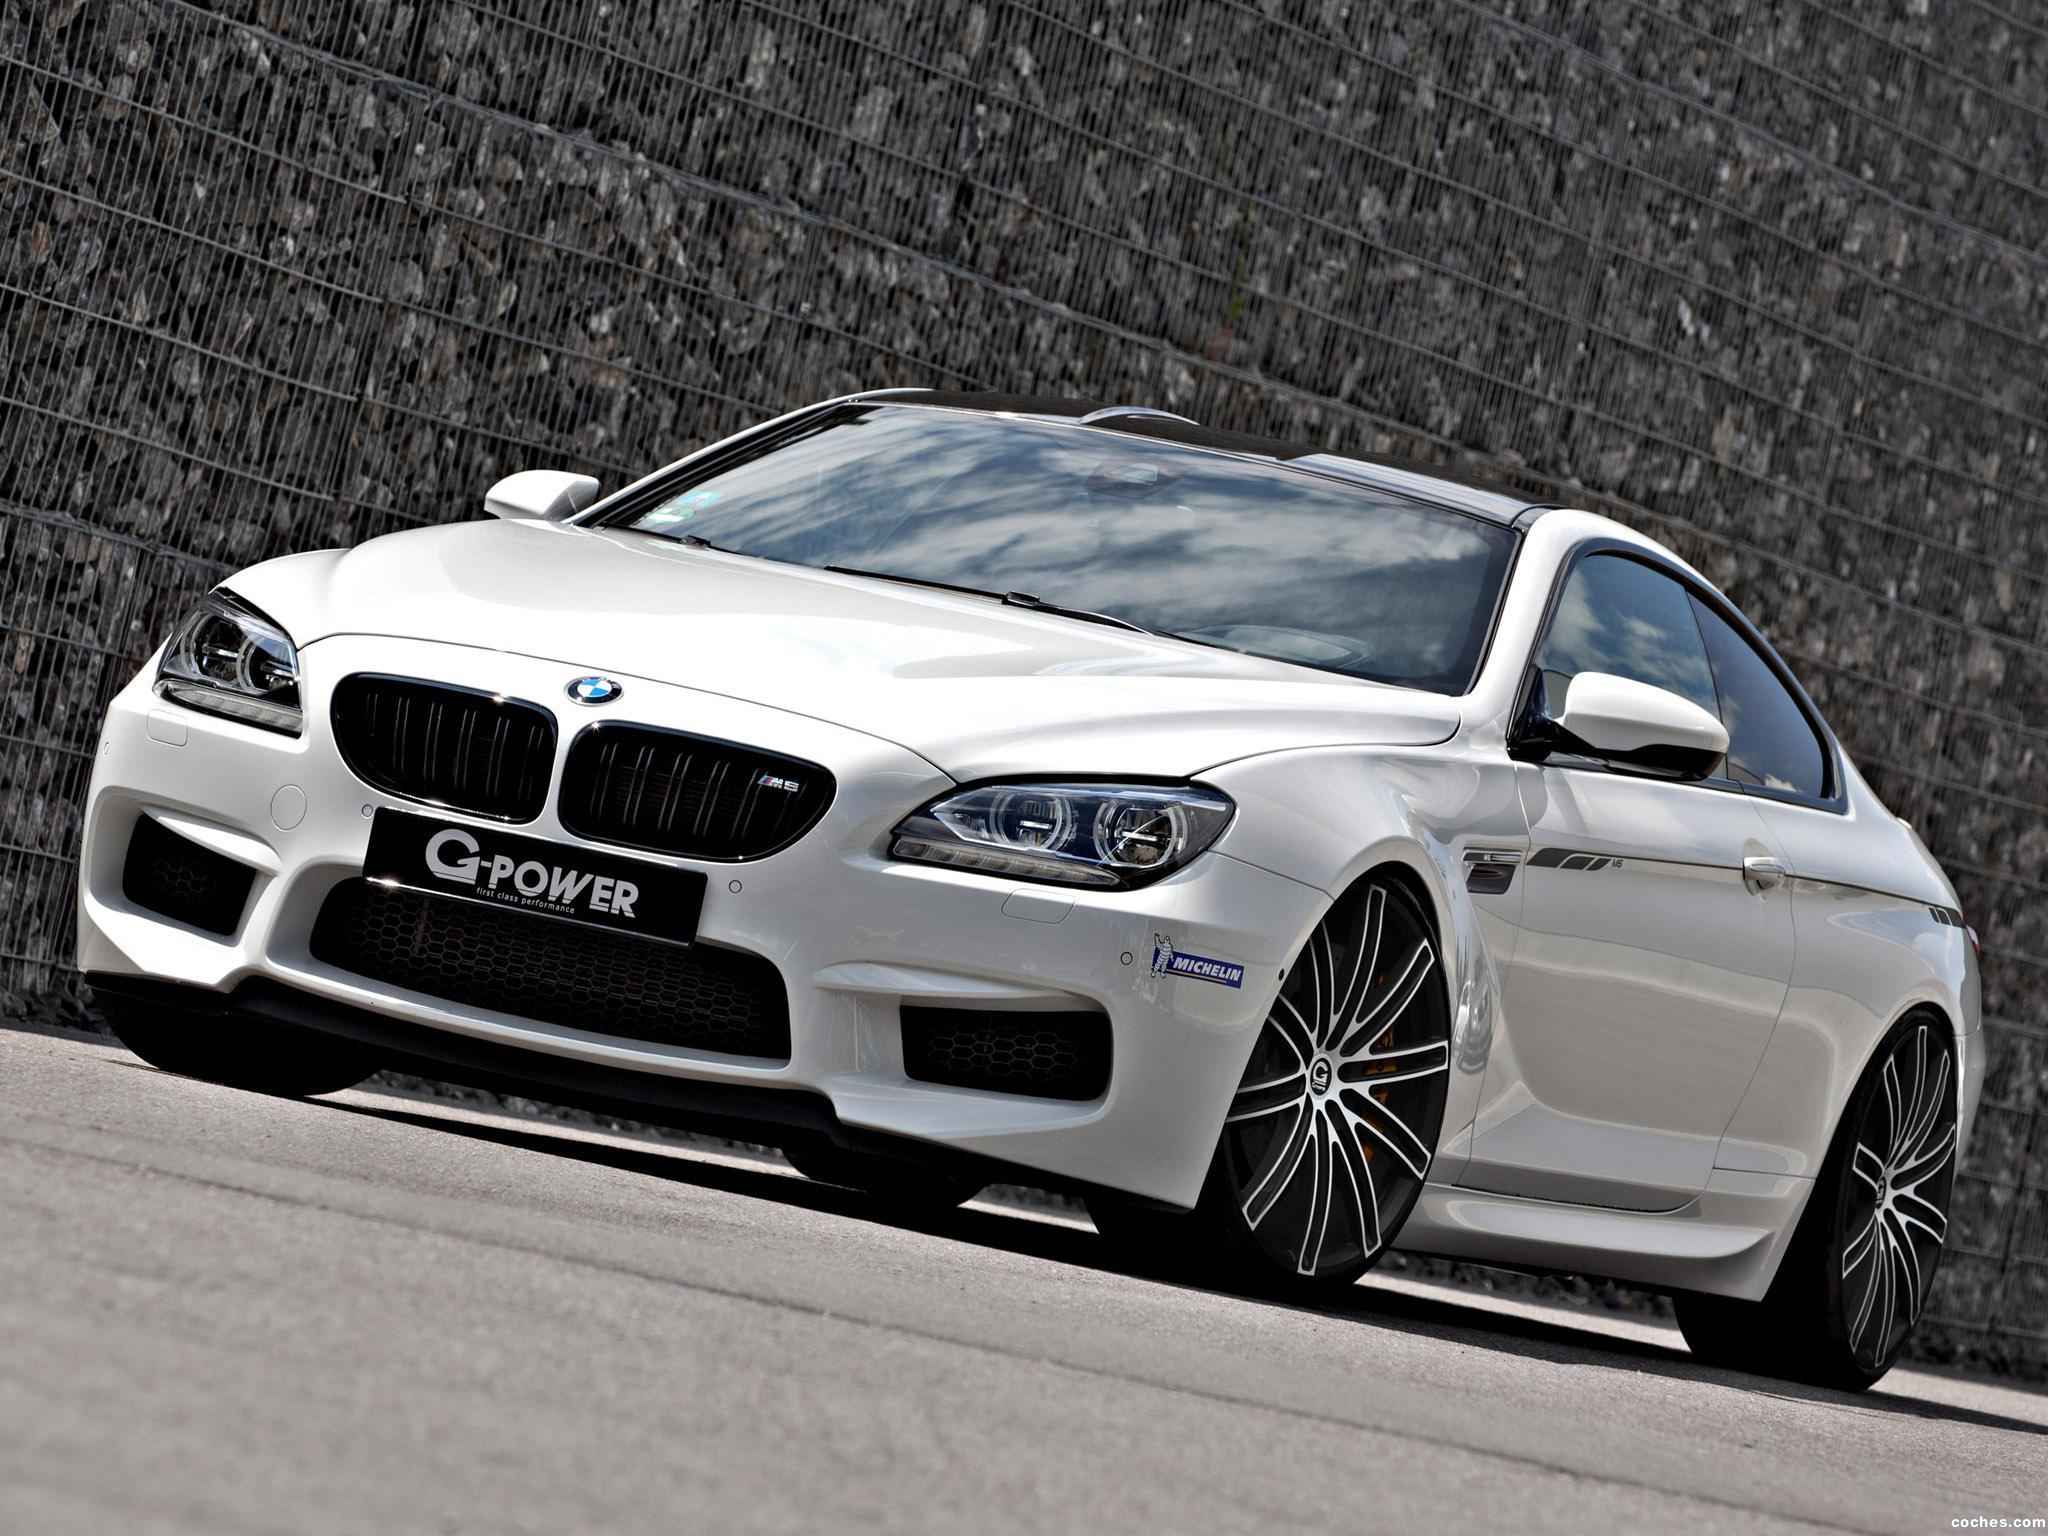 Foto 0 de G-Power BMW M6 F13 2013